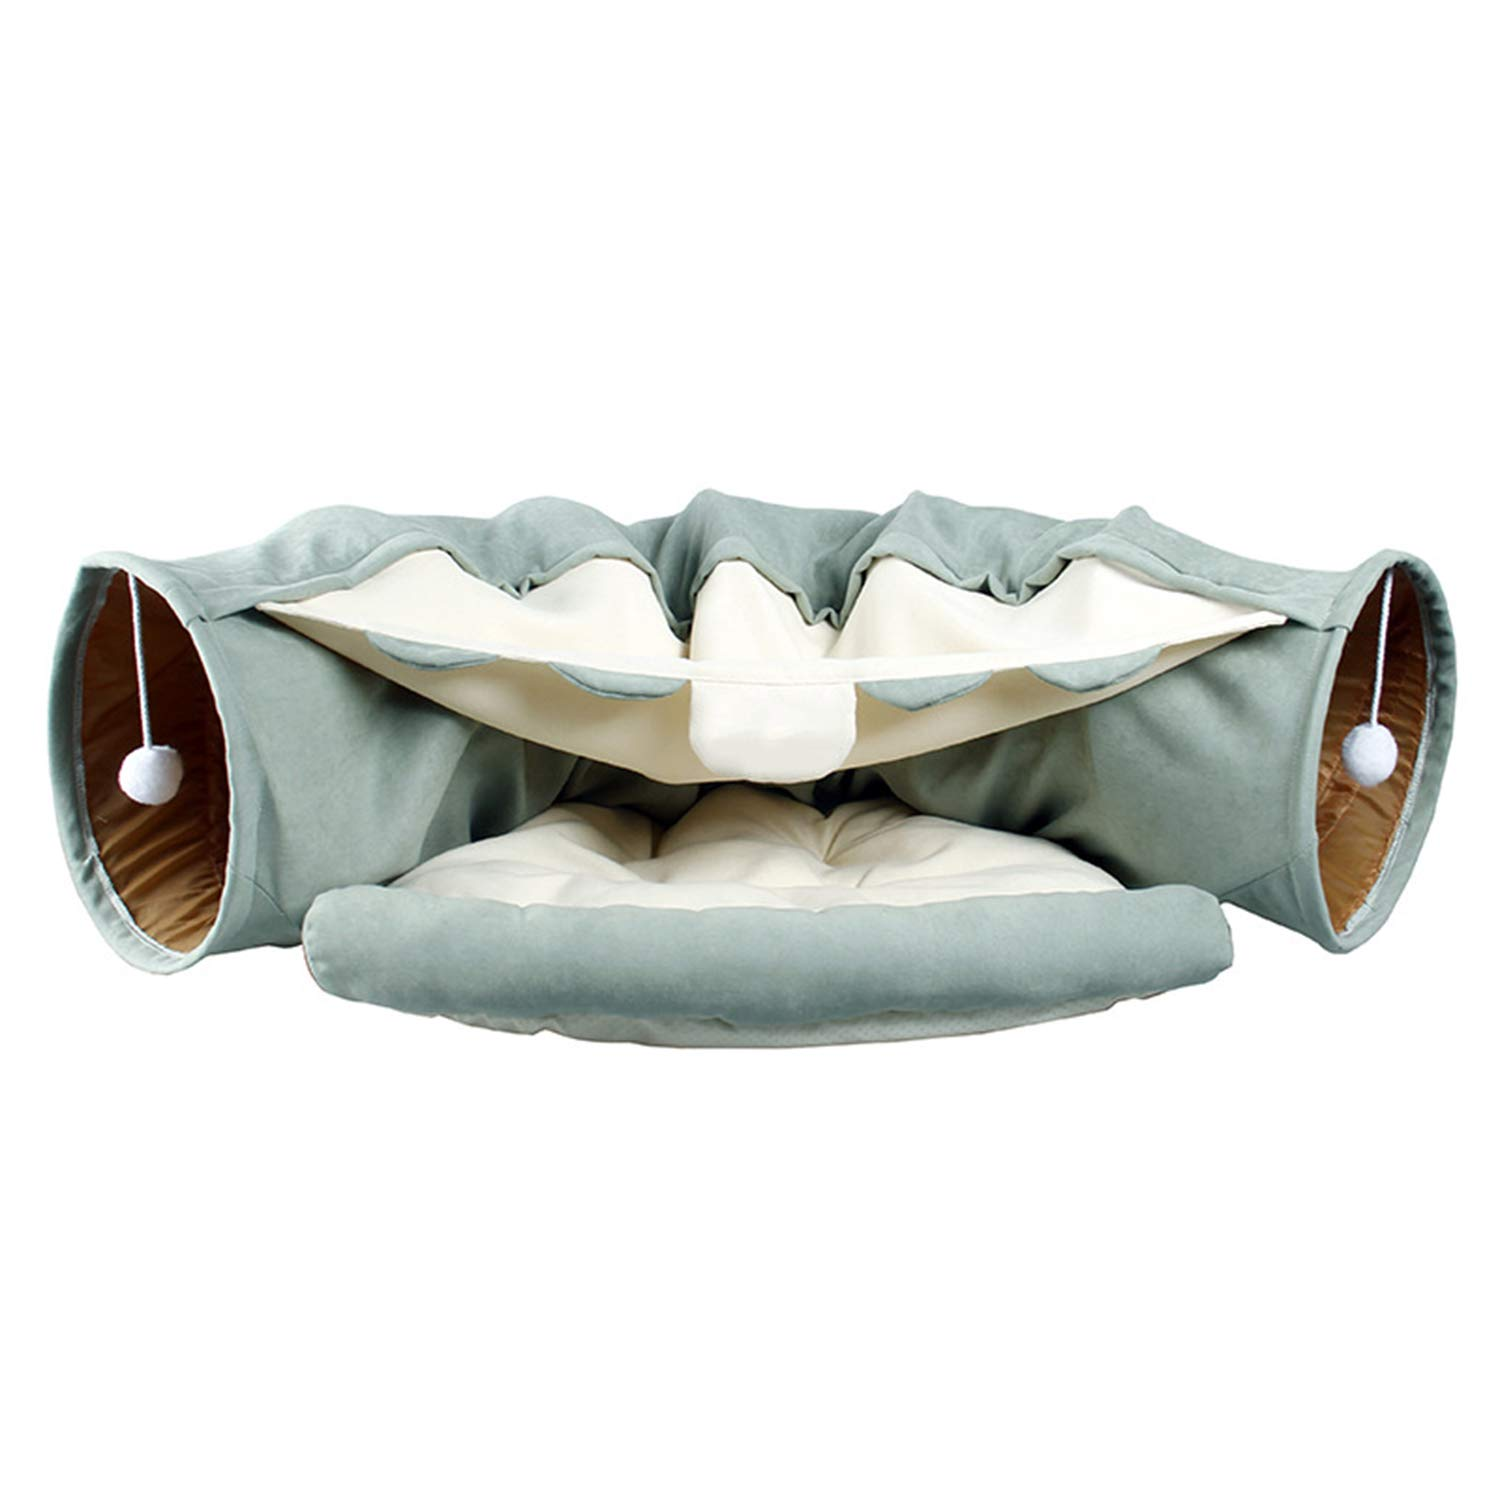 CLAIQY Cat Tunnel Toy,Foldable Cat Tunnel Three-Way Cat Channel Pet Supplies by CLAIQY